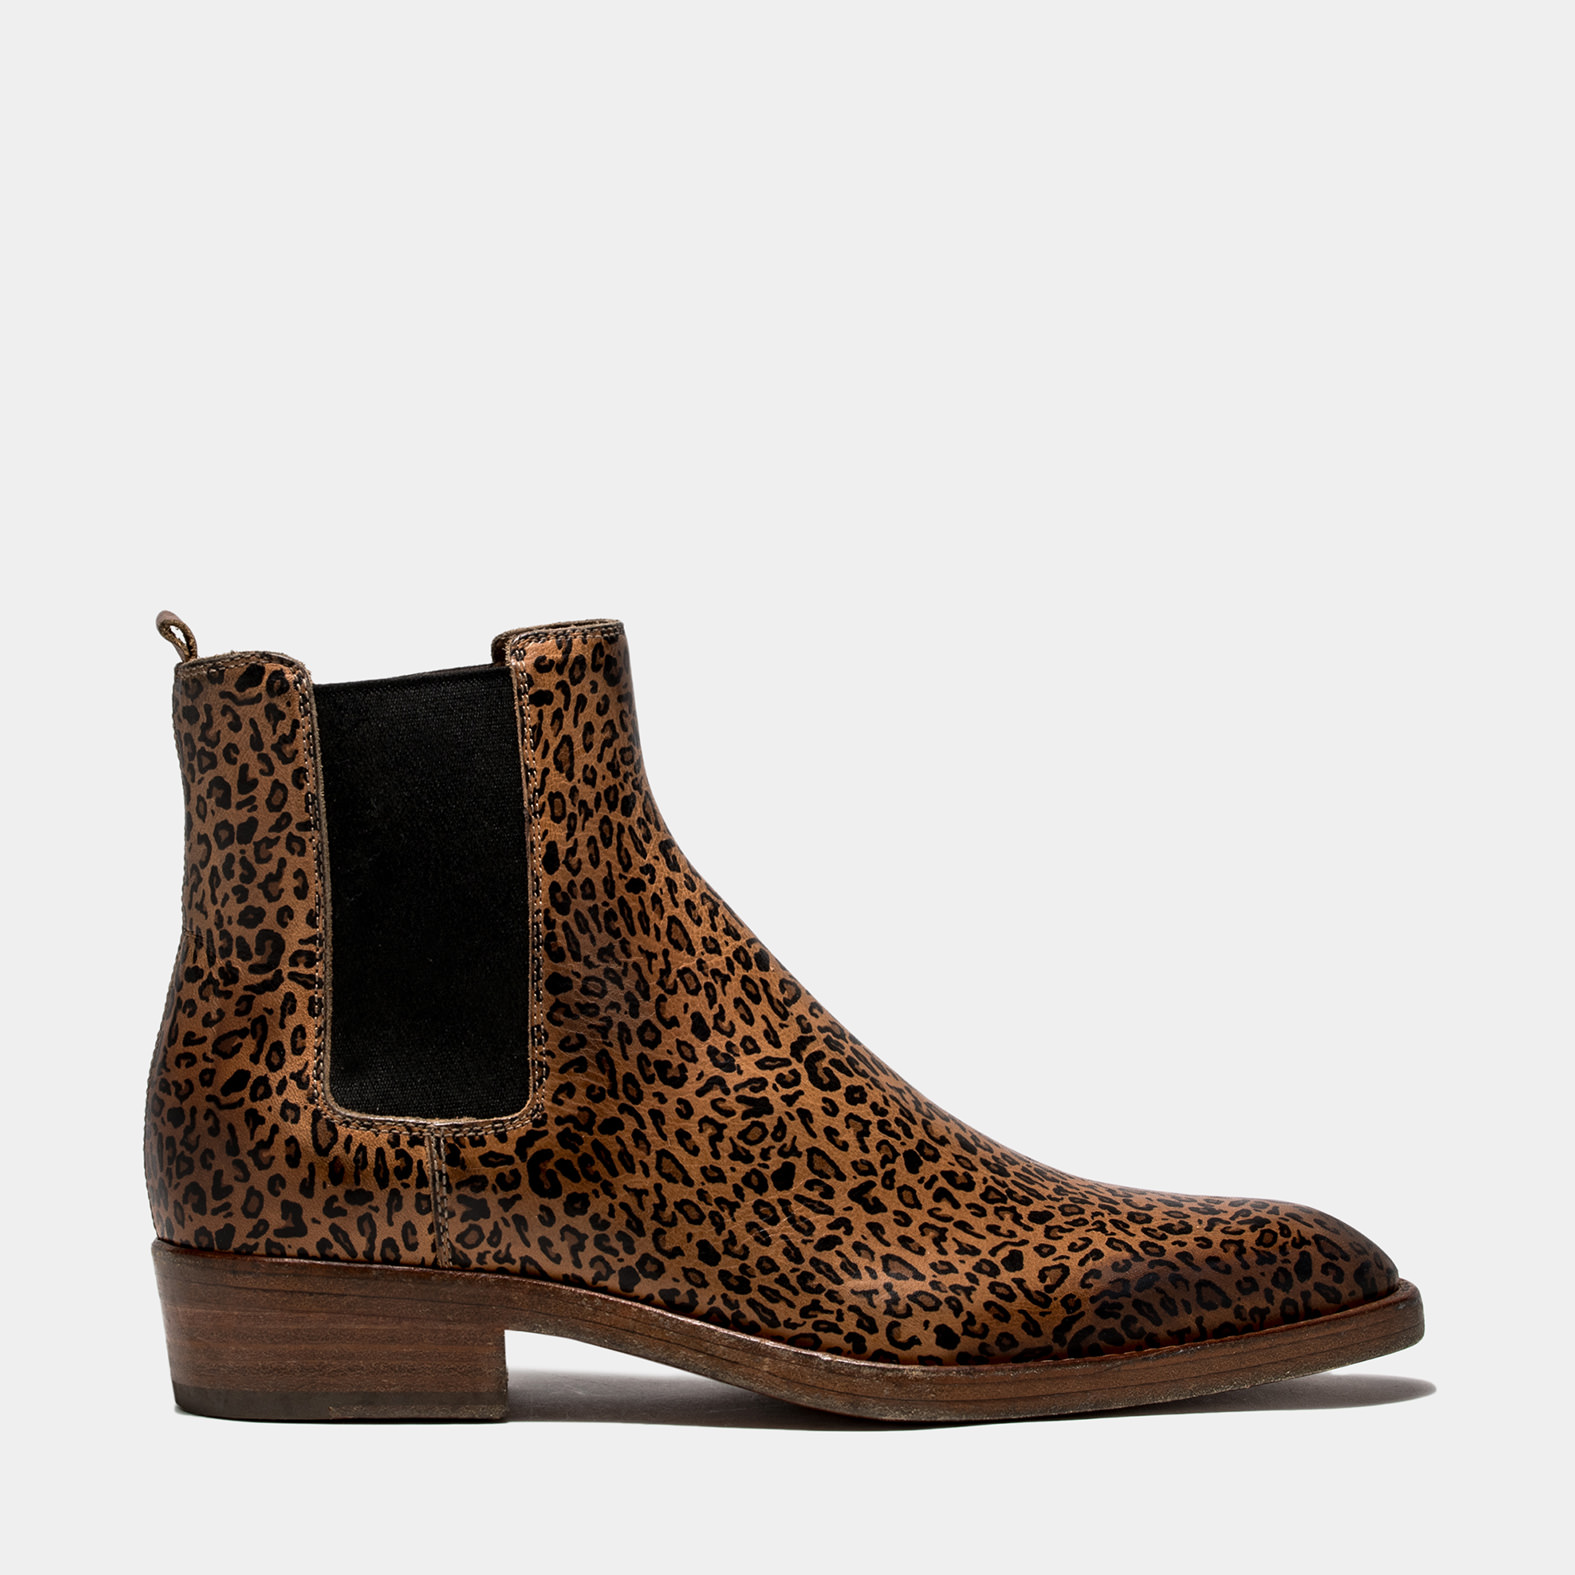 BUTTERO: NATURAL BROWN LEATHER QUENTIN BOOTS WITH LEOPARD PRINT